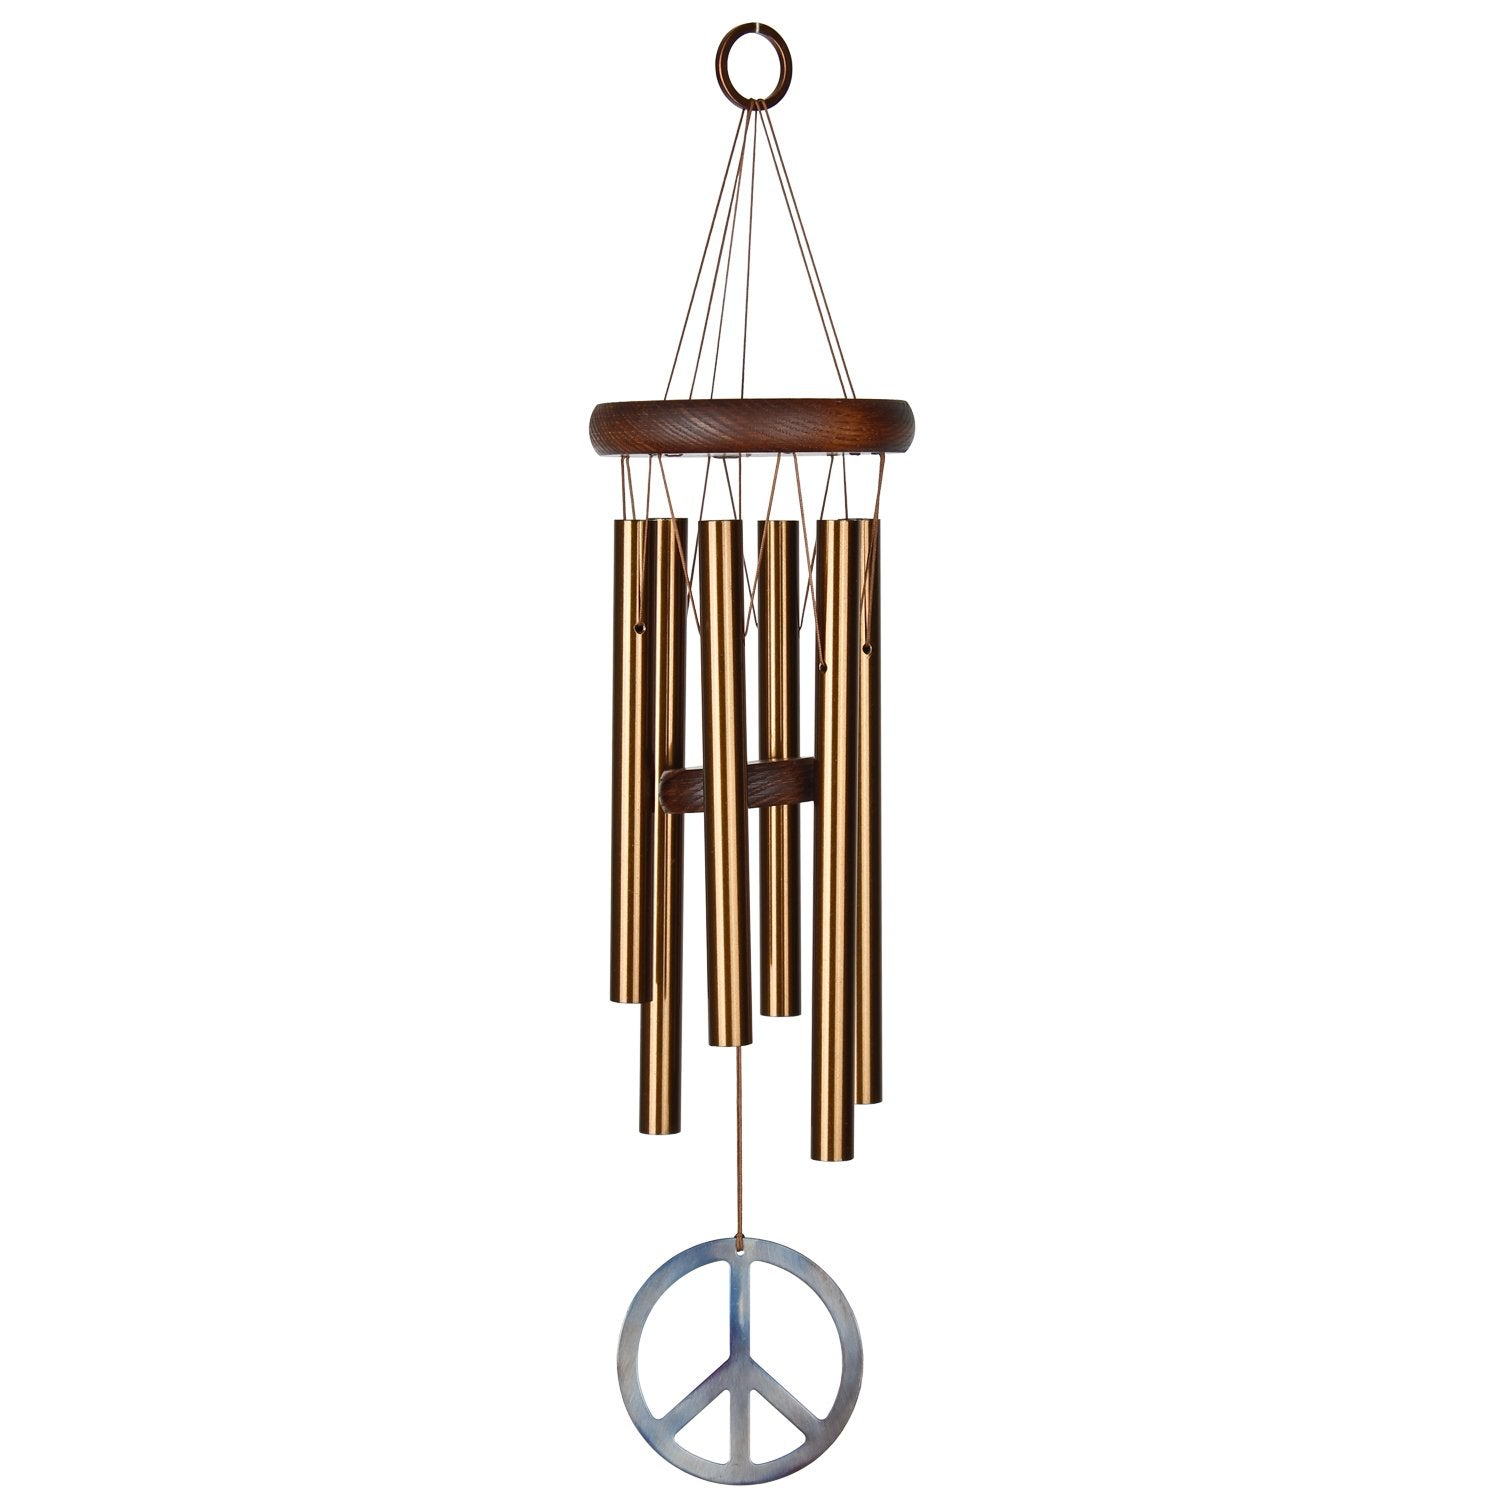 Peace Chime full product image